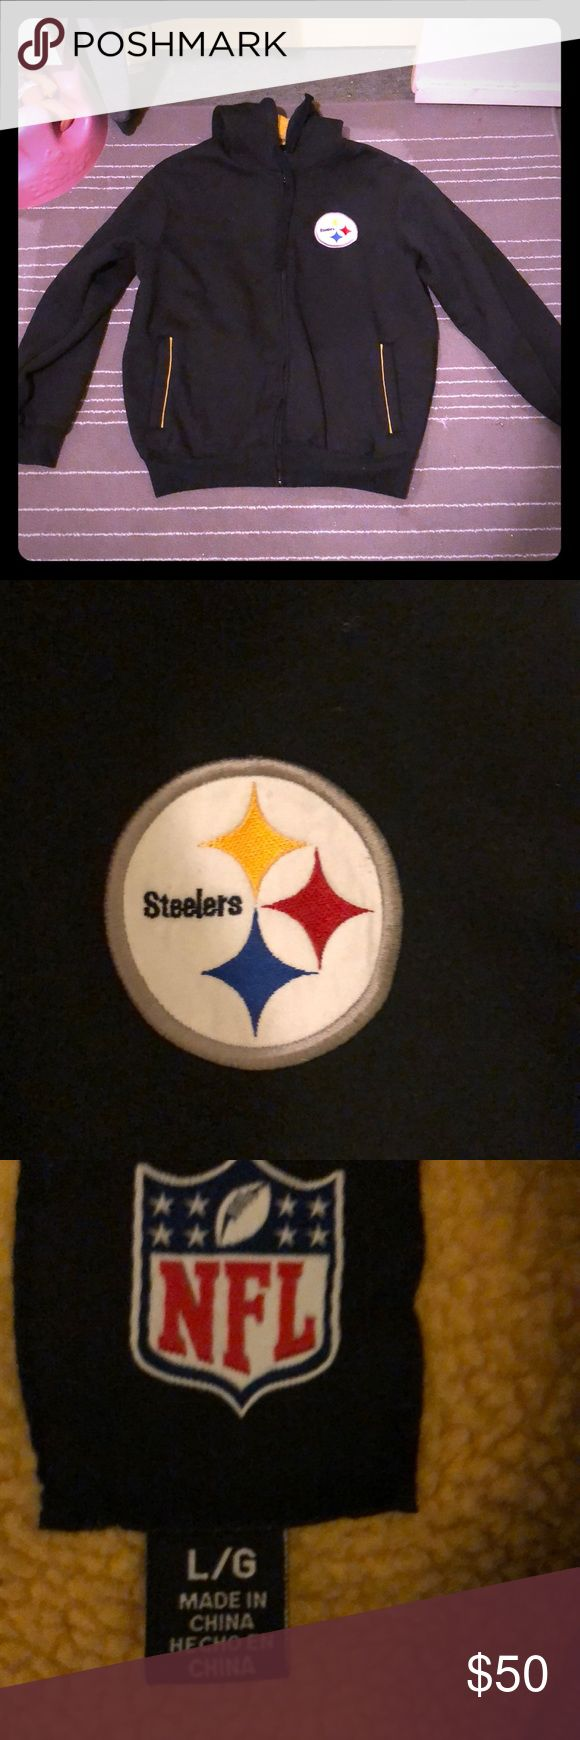 NFL STEELERS hoodie NFL / STEELERS / zipper hoodie / side pockets / super warm yellow inside shown in pic / excellent condition NFL Sweaters Zip Up